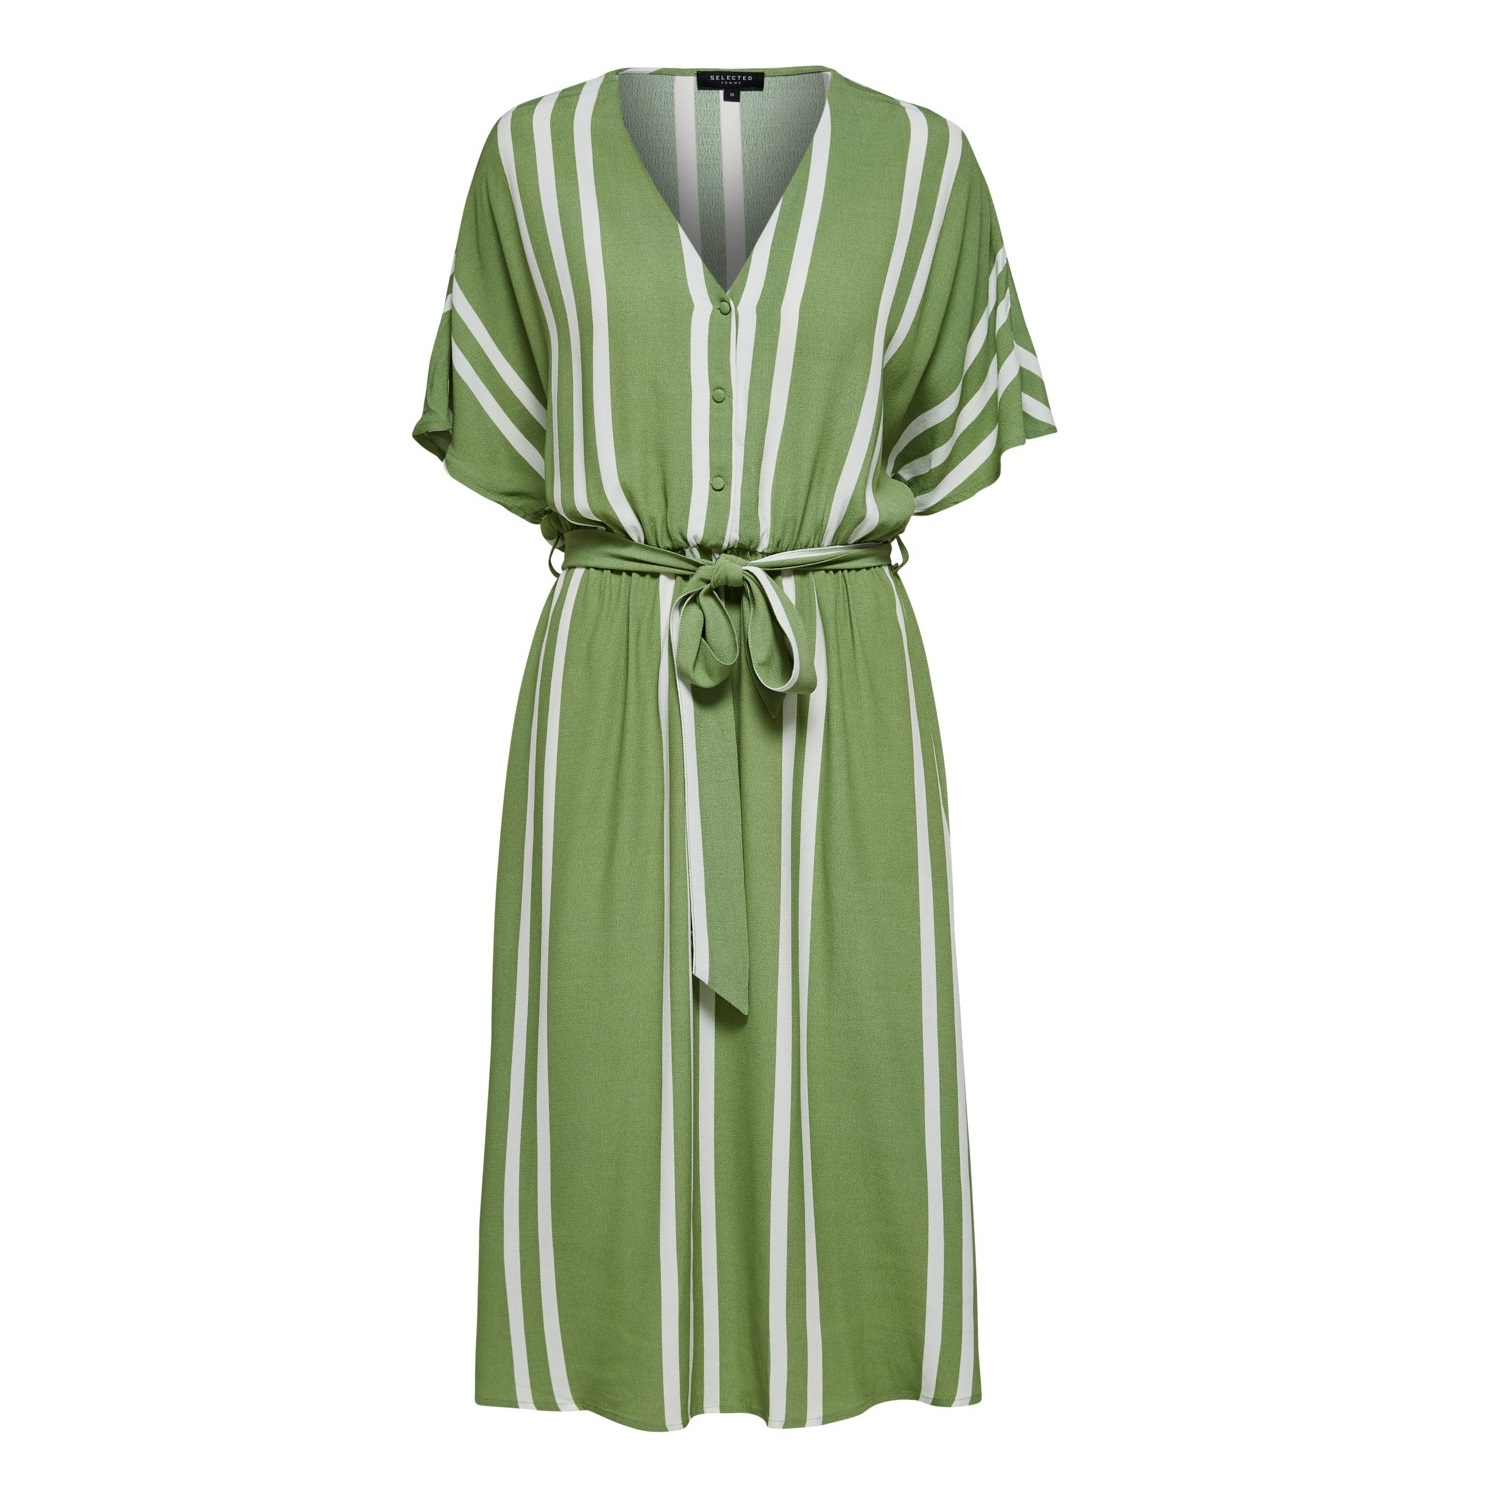 SALE Vienna green stripe dress was £85